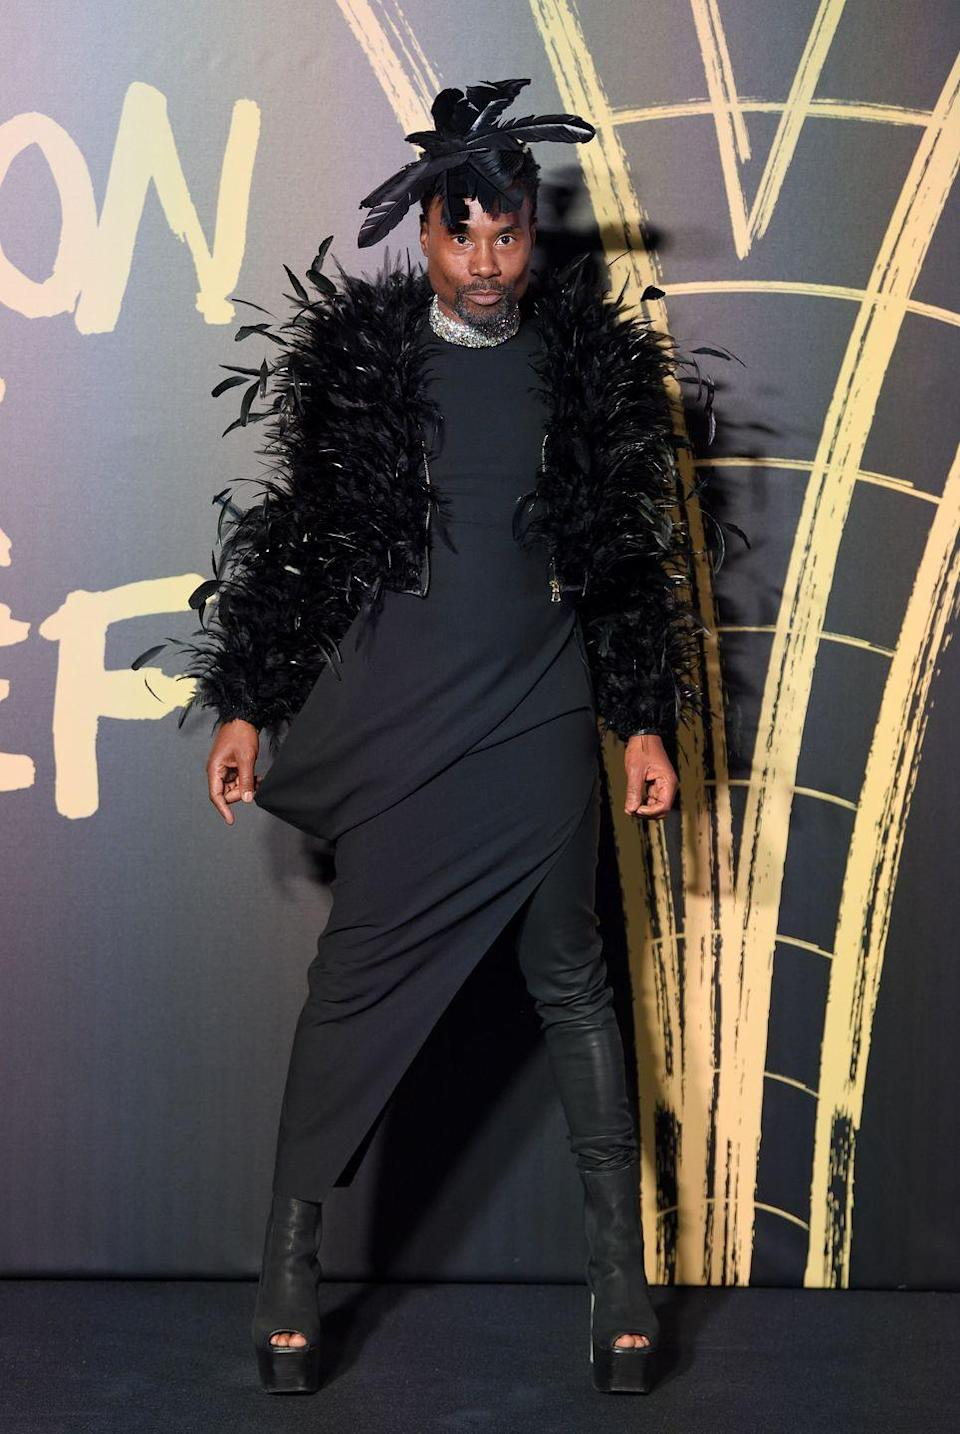 <p>The actor attended the annual show wearing a black feathered jacket by Adrian Manceras, a black dress and peep-toe boots by Rick Owens, a black feathered hat by Stephen Jones and diamond chocker necklace by Alexis Bittar. </p>